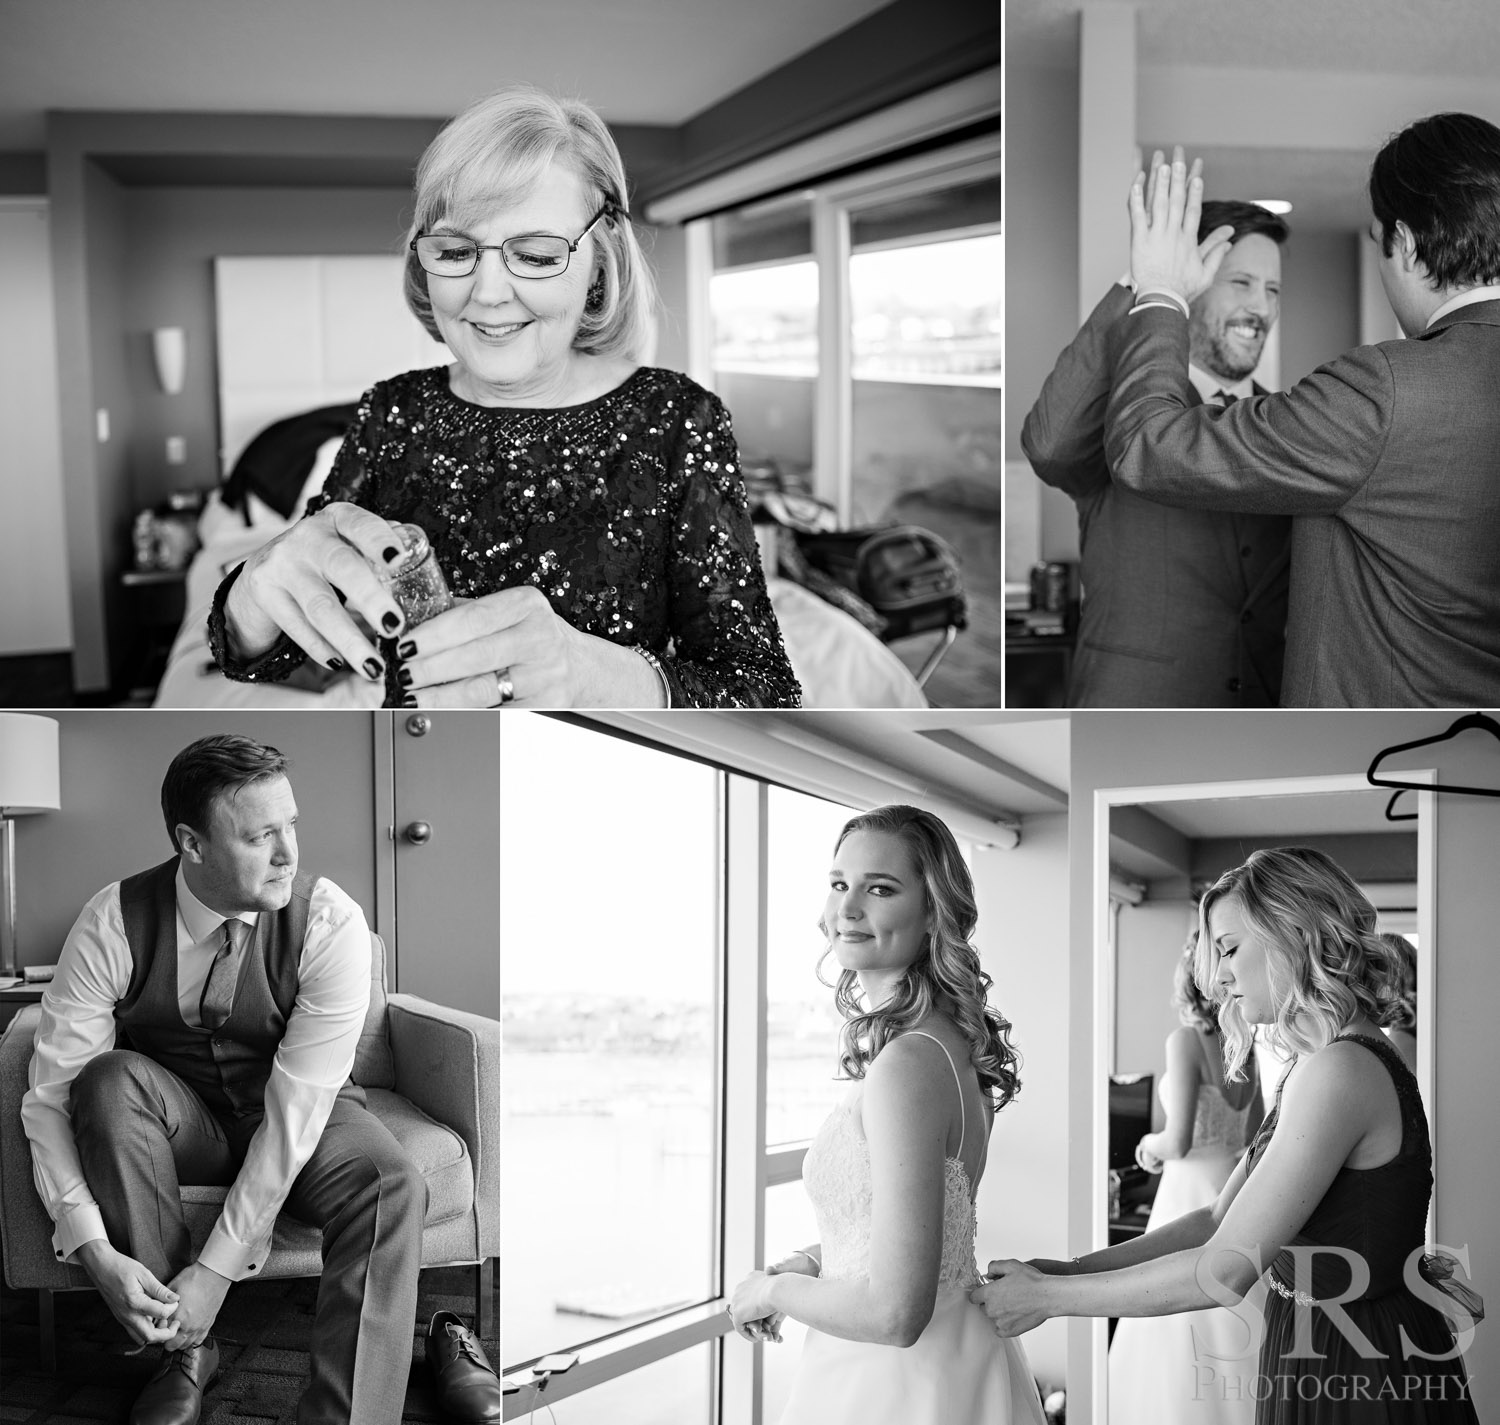 02_srs_photography_sara_stadtmiller_asbury_park_wedding_photography_nj_wedding_photographer_monmouth_county_wedding_photographer_the_oyster_point_getting_ready